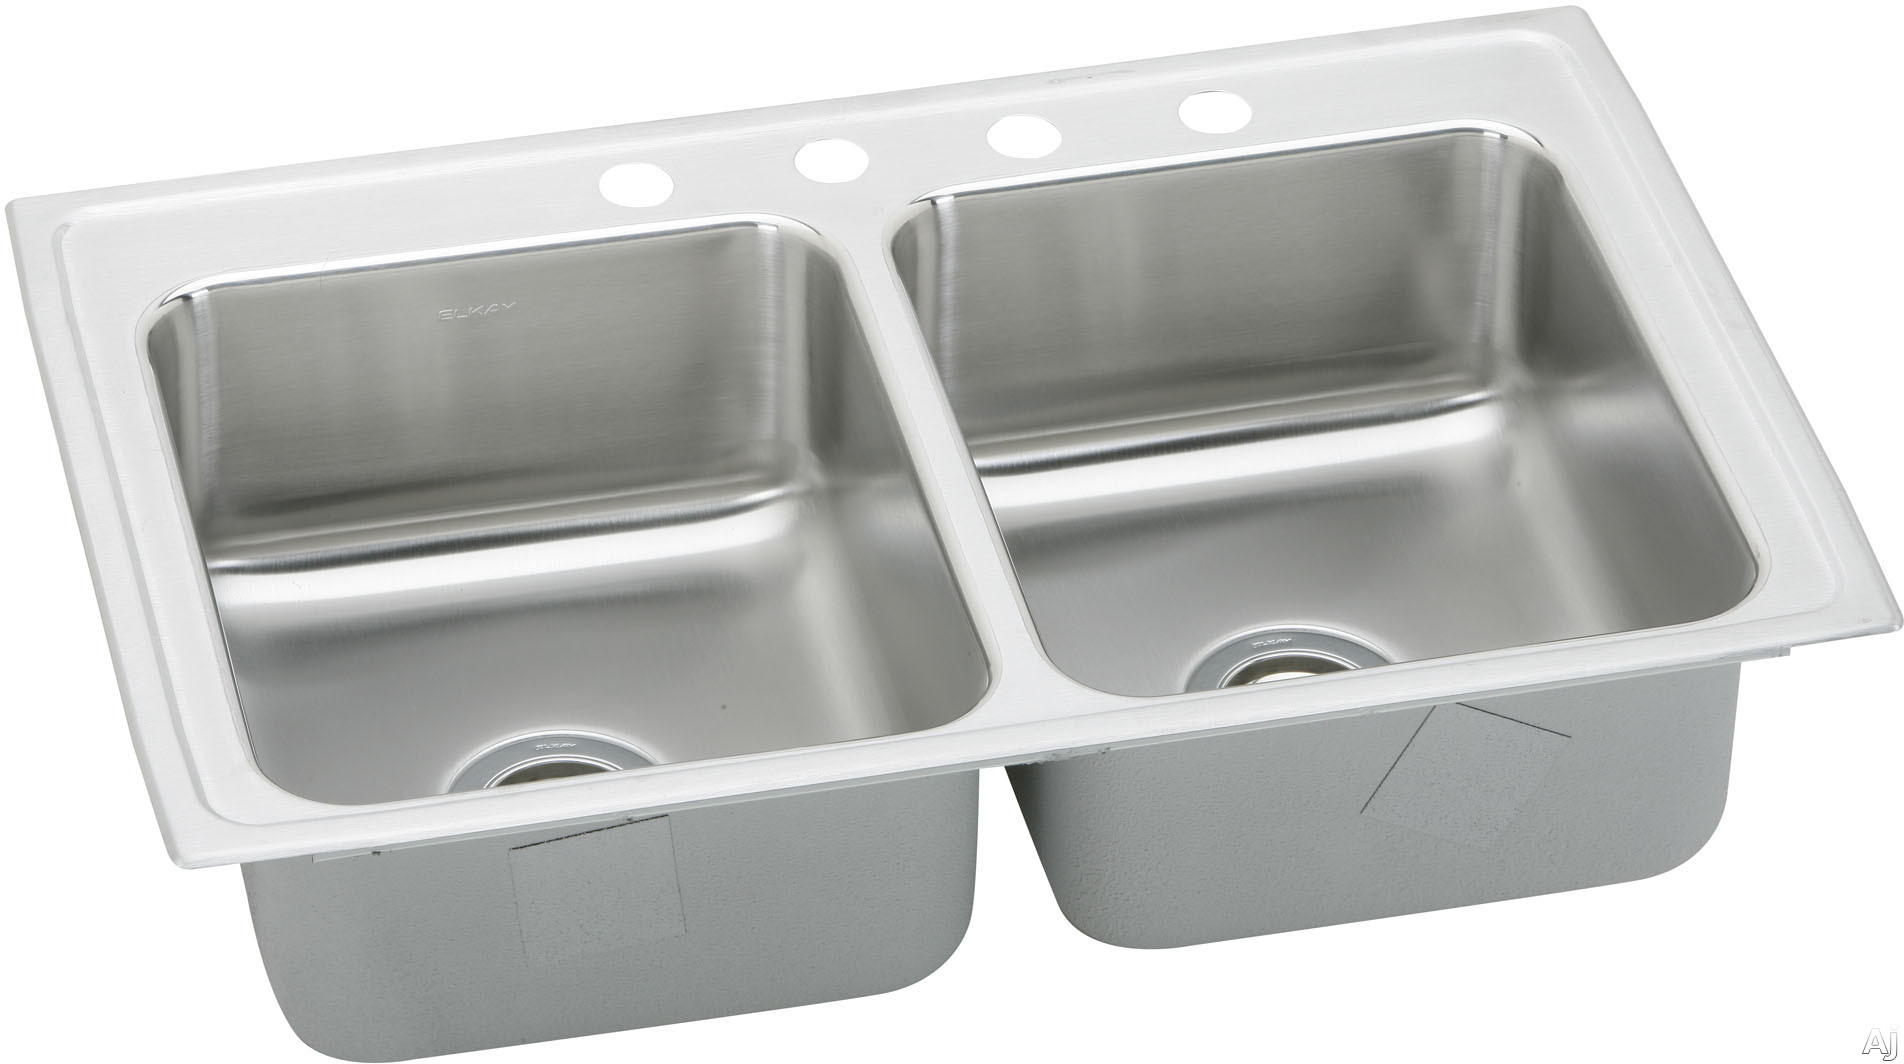 "Elkay Lustertone Collection LRAD3722554 37"" Top Mount Double Bowl Stainless Steel Sink with, U.S. & Canada LRAD3722554"